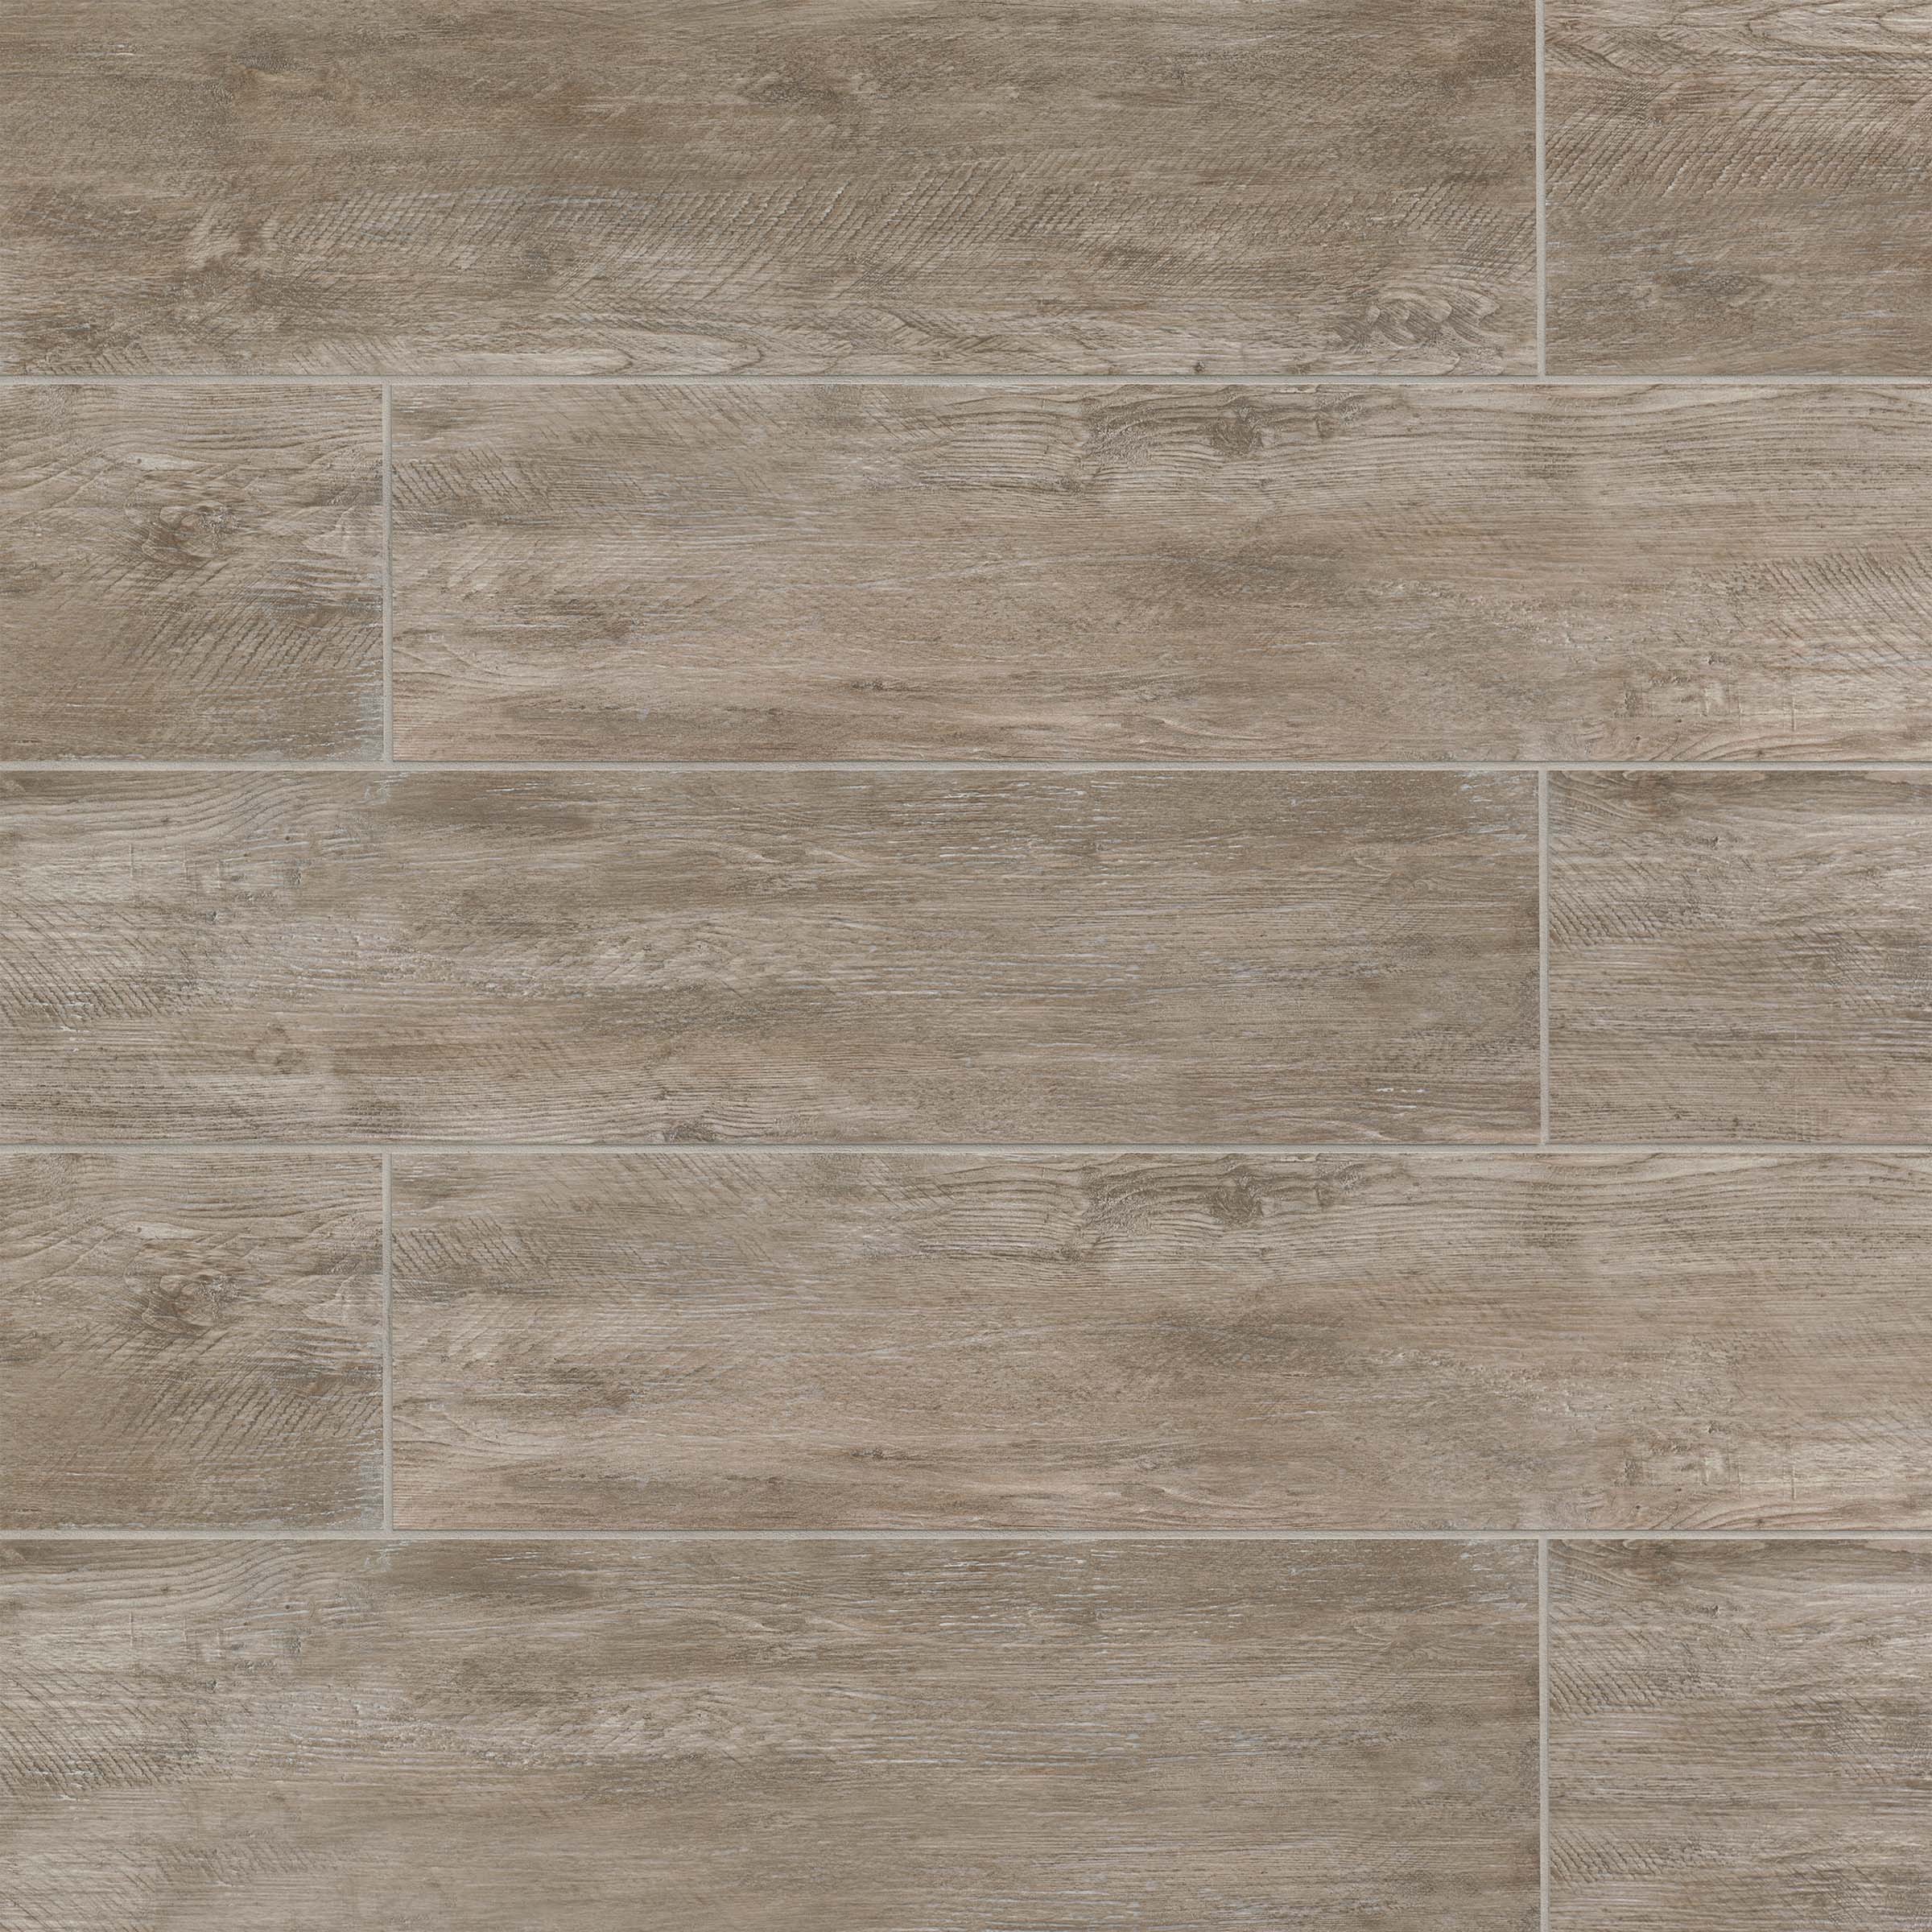 River Wood 8 X 36 Floor Wall Tile In Taupe